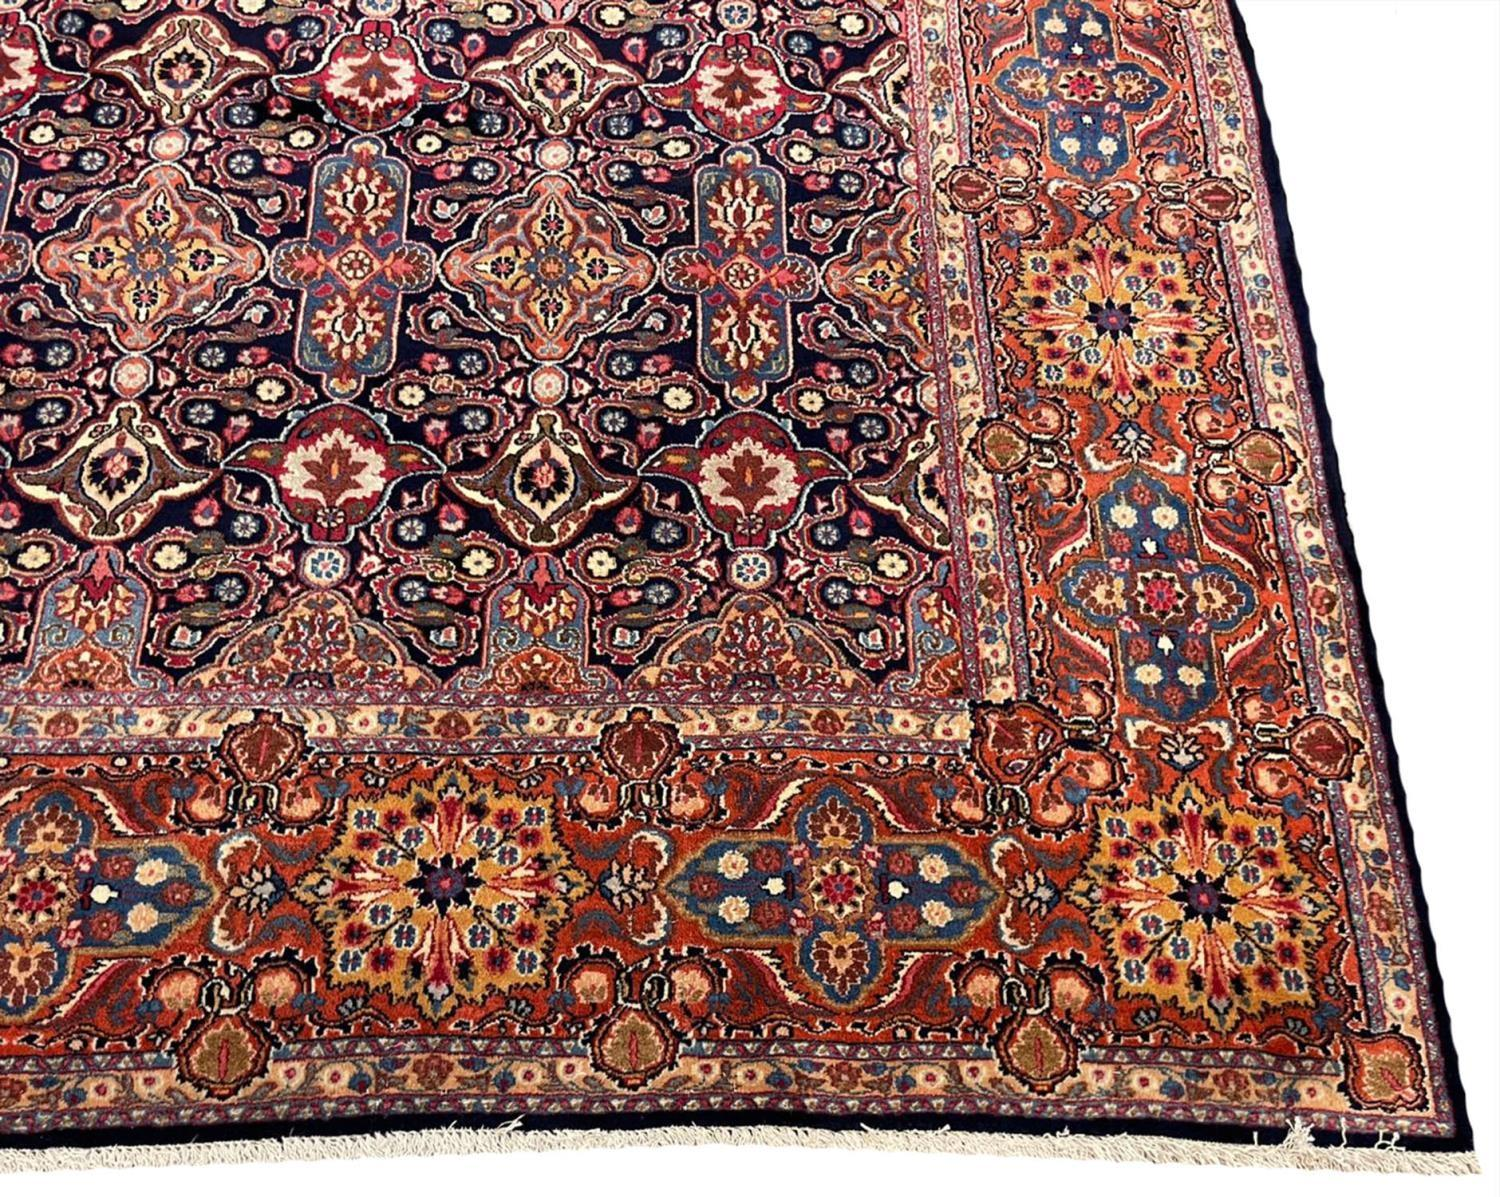 FINE ANTIQUE PERSIAN KHORASSAN CARPET, 340cm x 260cm. - Image 3 of 5